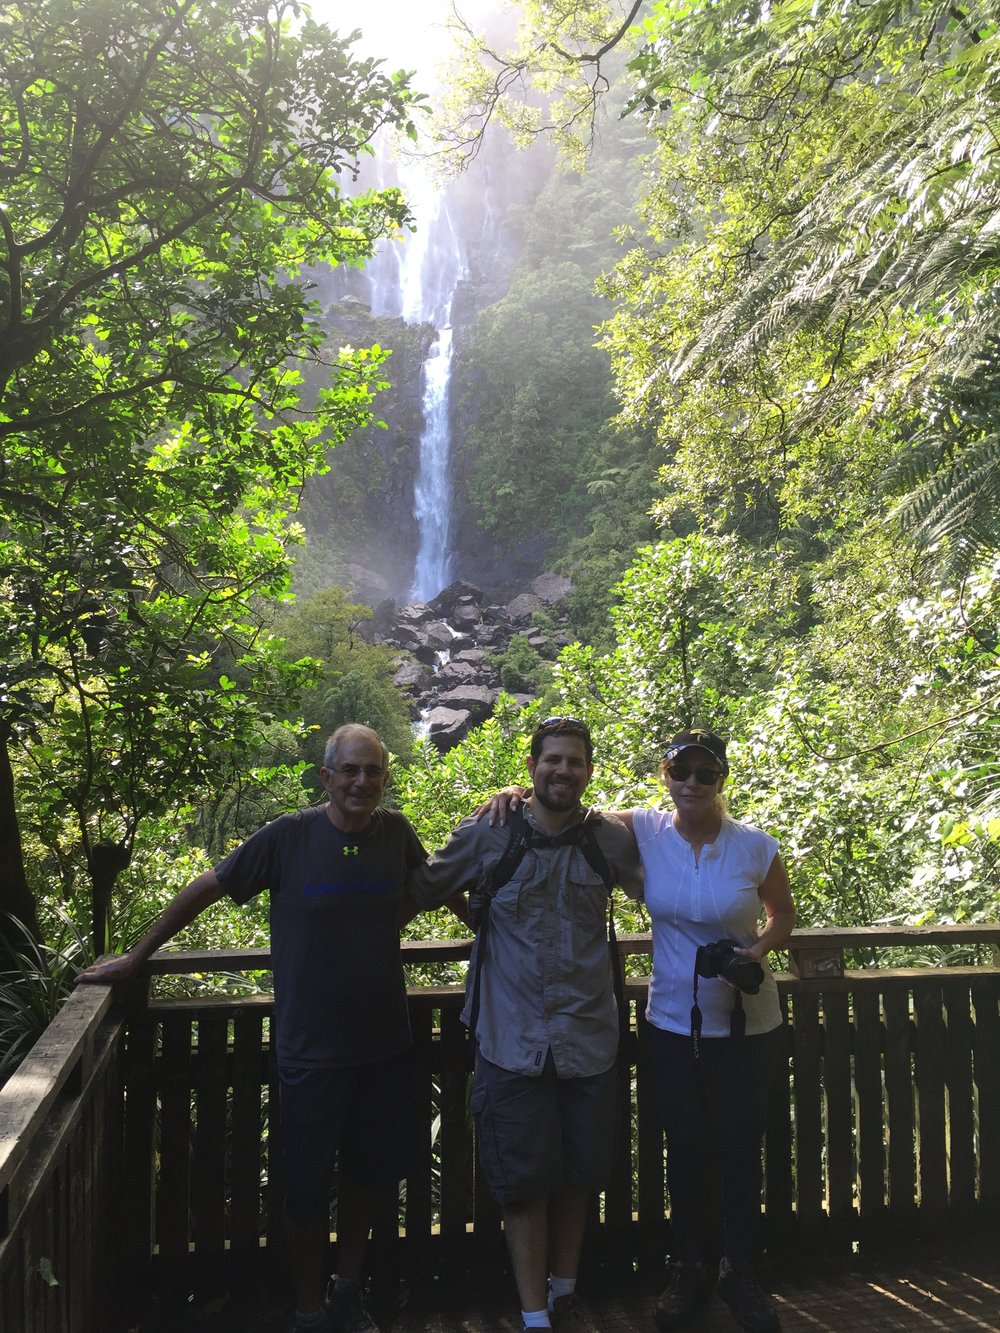 Joseph and Parents hiking to the falls